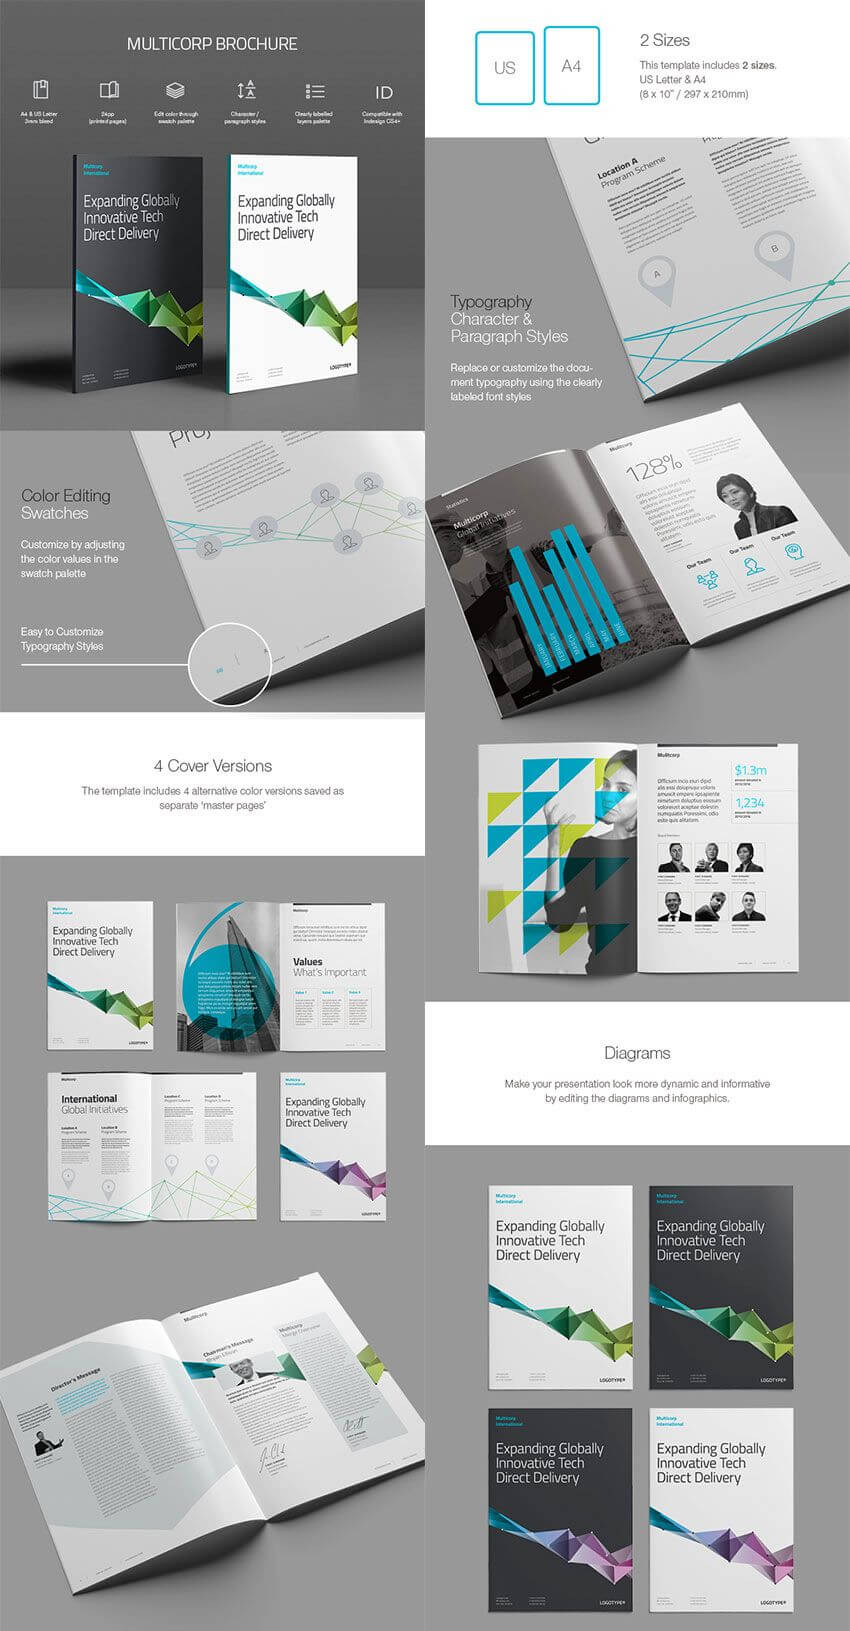 20 Best Indesign Brochure Templates – For Creative Business With Indesign Templates Free Download Brochure